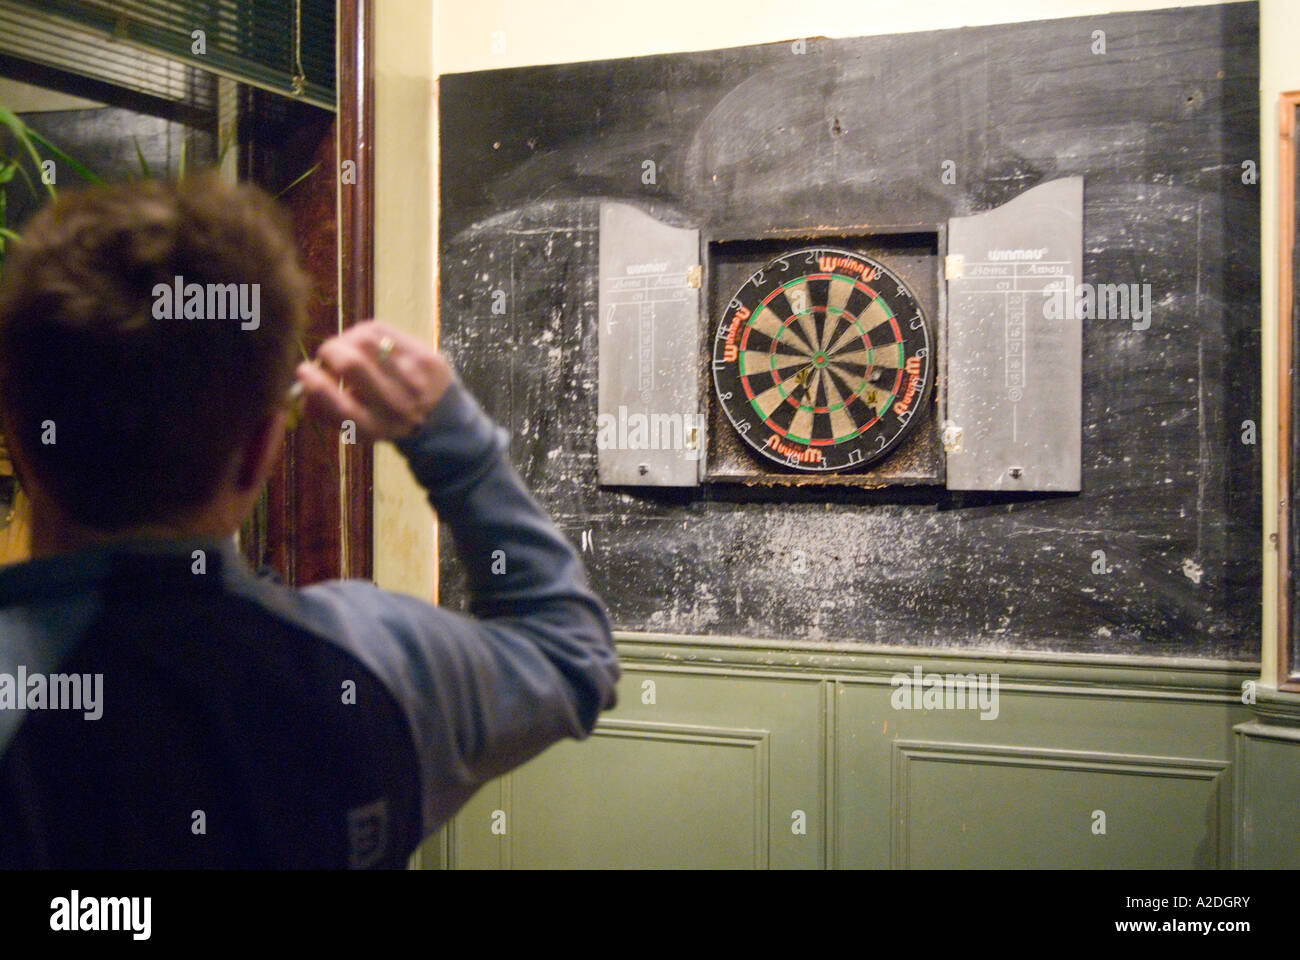 Man Playing Traditional Game Of Darts In Pub London England Uk